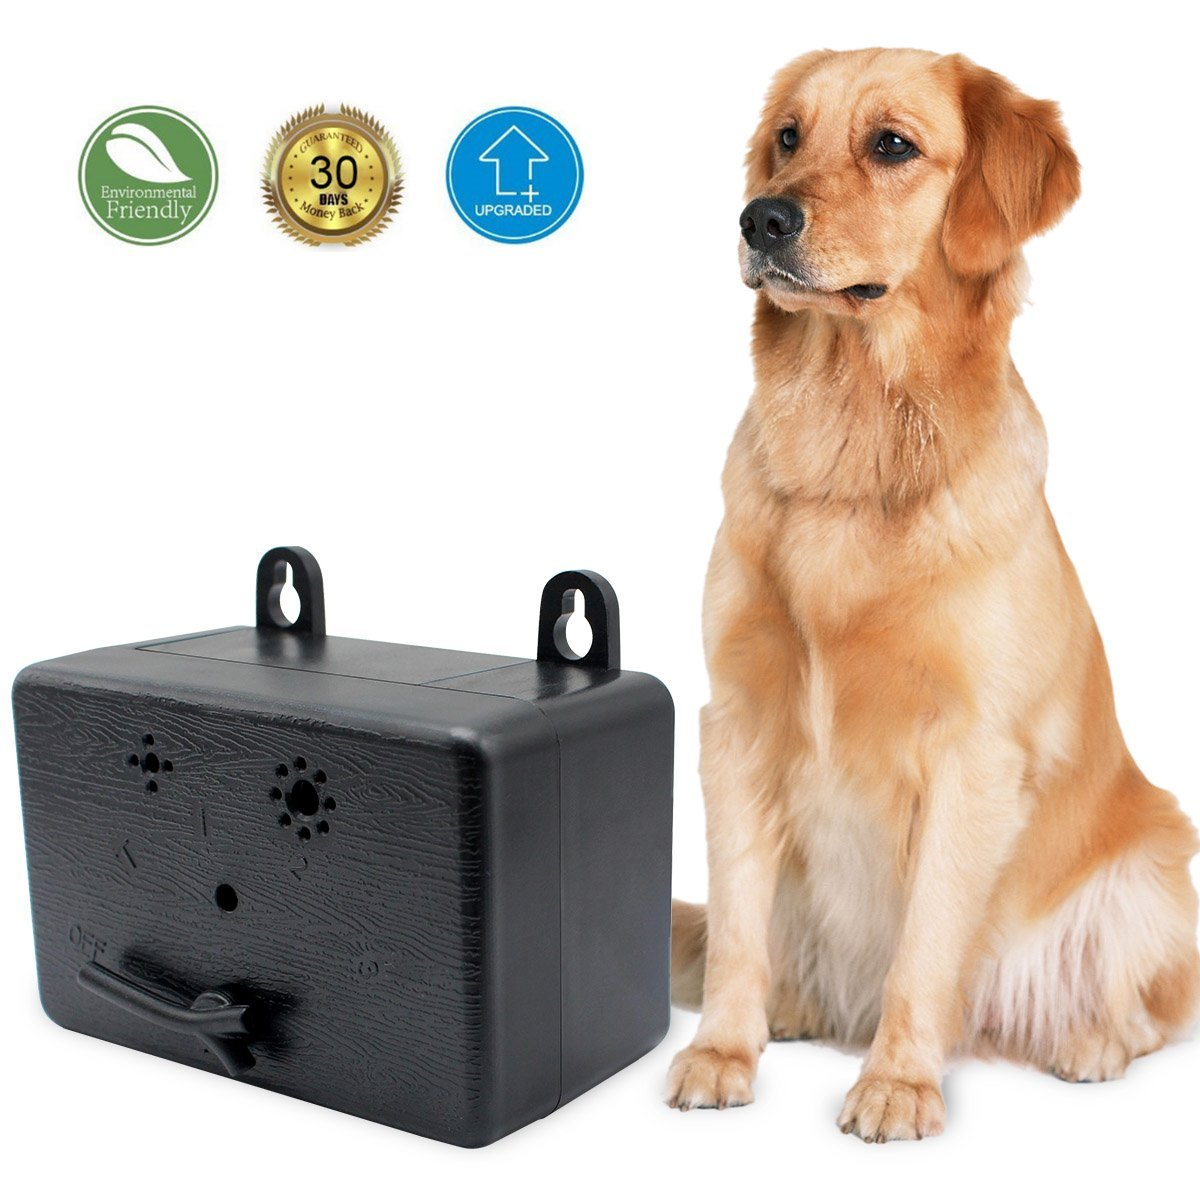 Cypropid 2018 Upgraded Ultrasonic Anti Barking Deterrents New Outdoor Training Tool, Safe for Small/Medium/Large Dogs and Other Pets/Plant/Human, Portable Size